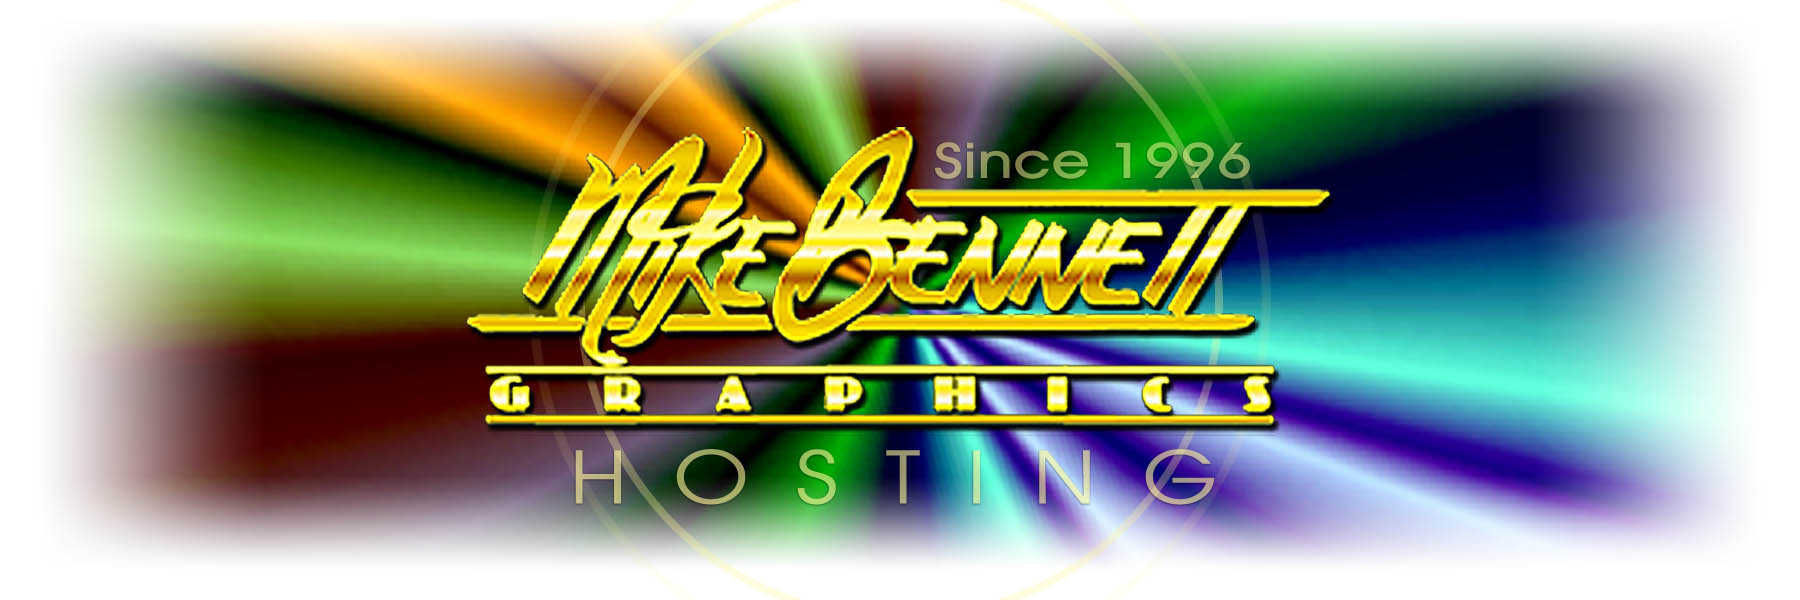 MBGRAPHICS HOSTING - Internet Services from Mike Bennett Graphics